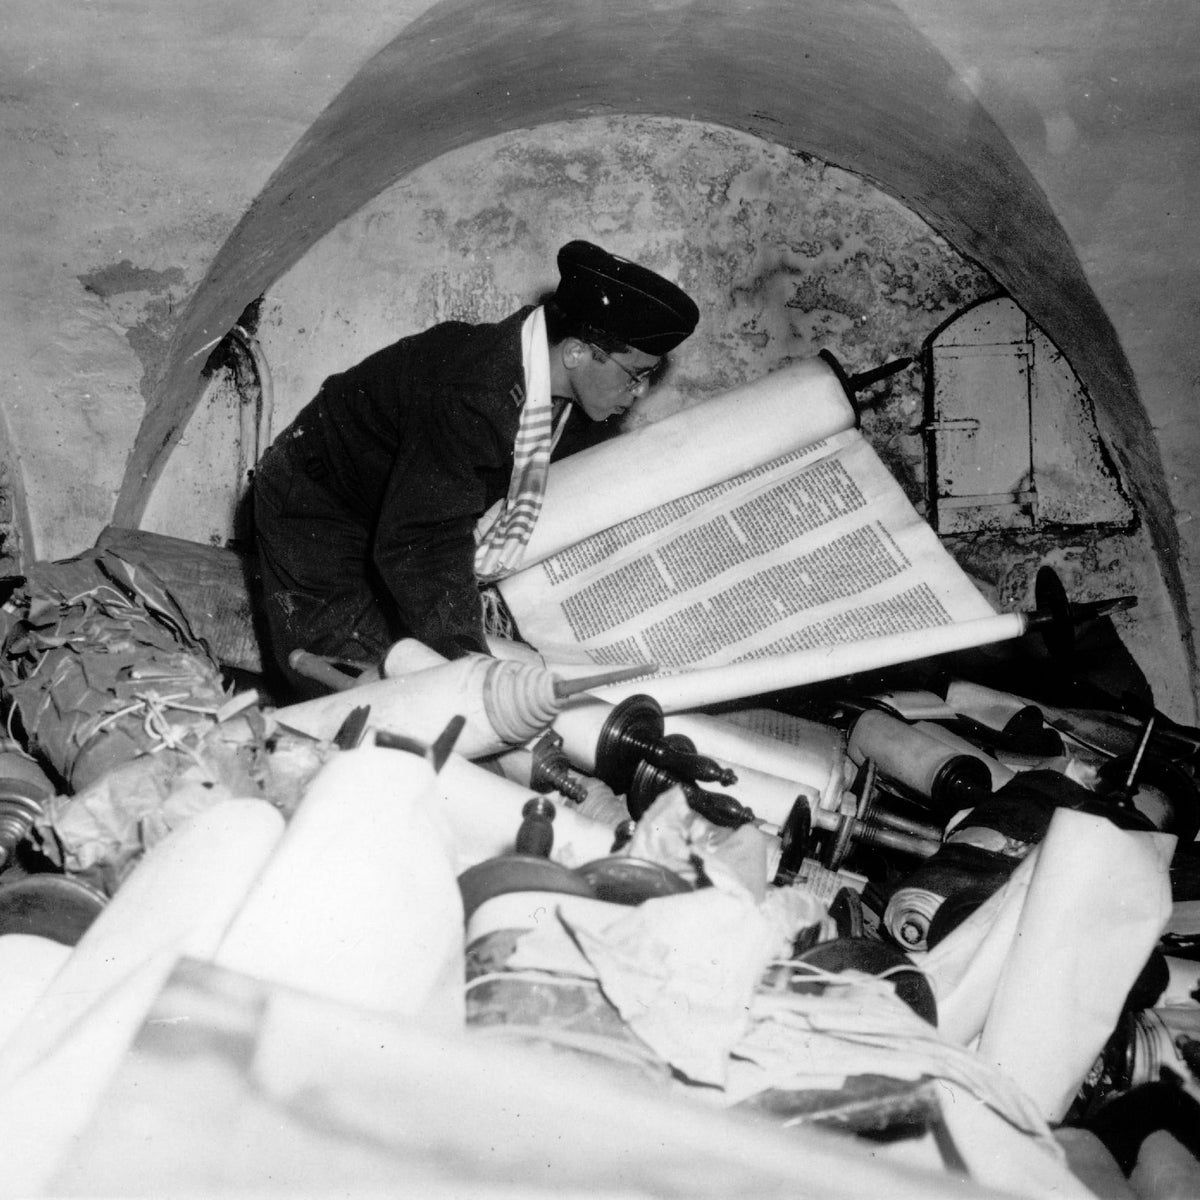 Chaplain Samuel Blinder examines Torah scrolls looted by the Nazis and hidden in a basement in Frankfurt, 1945.